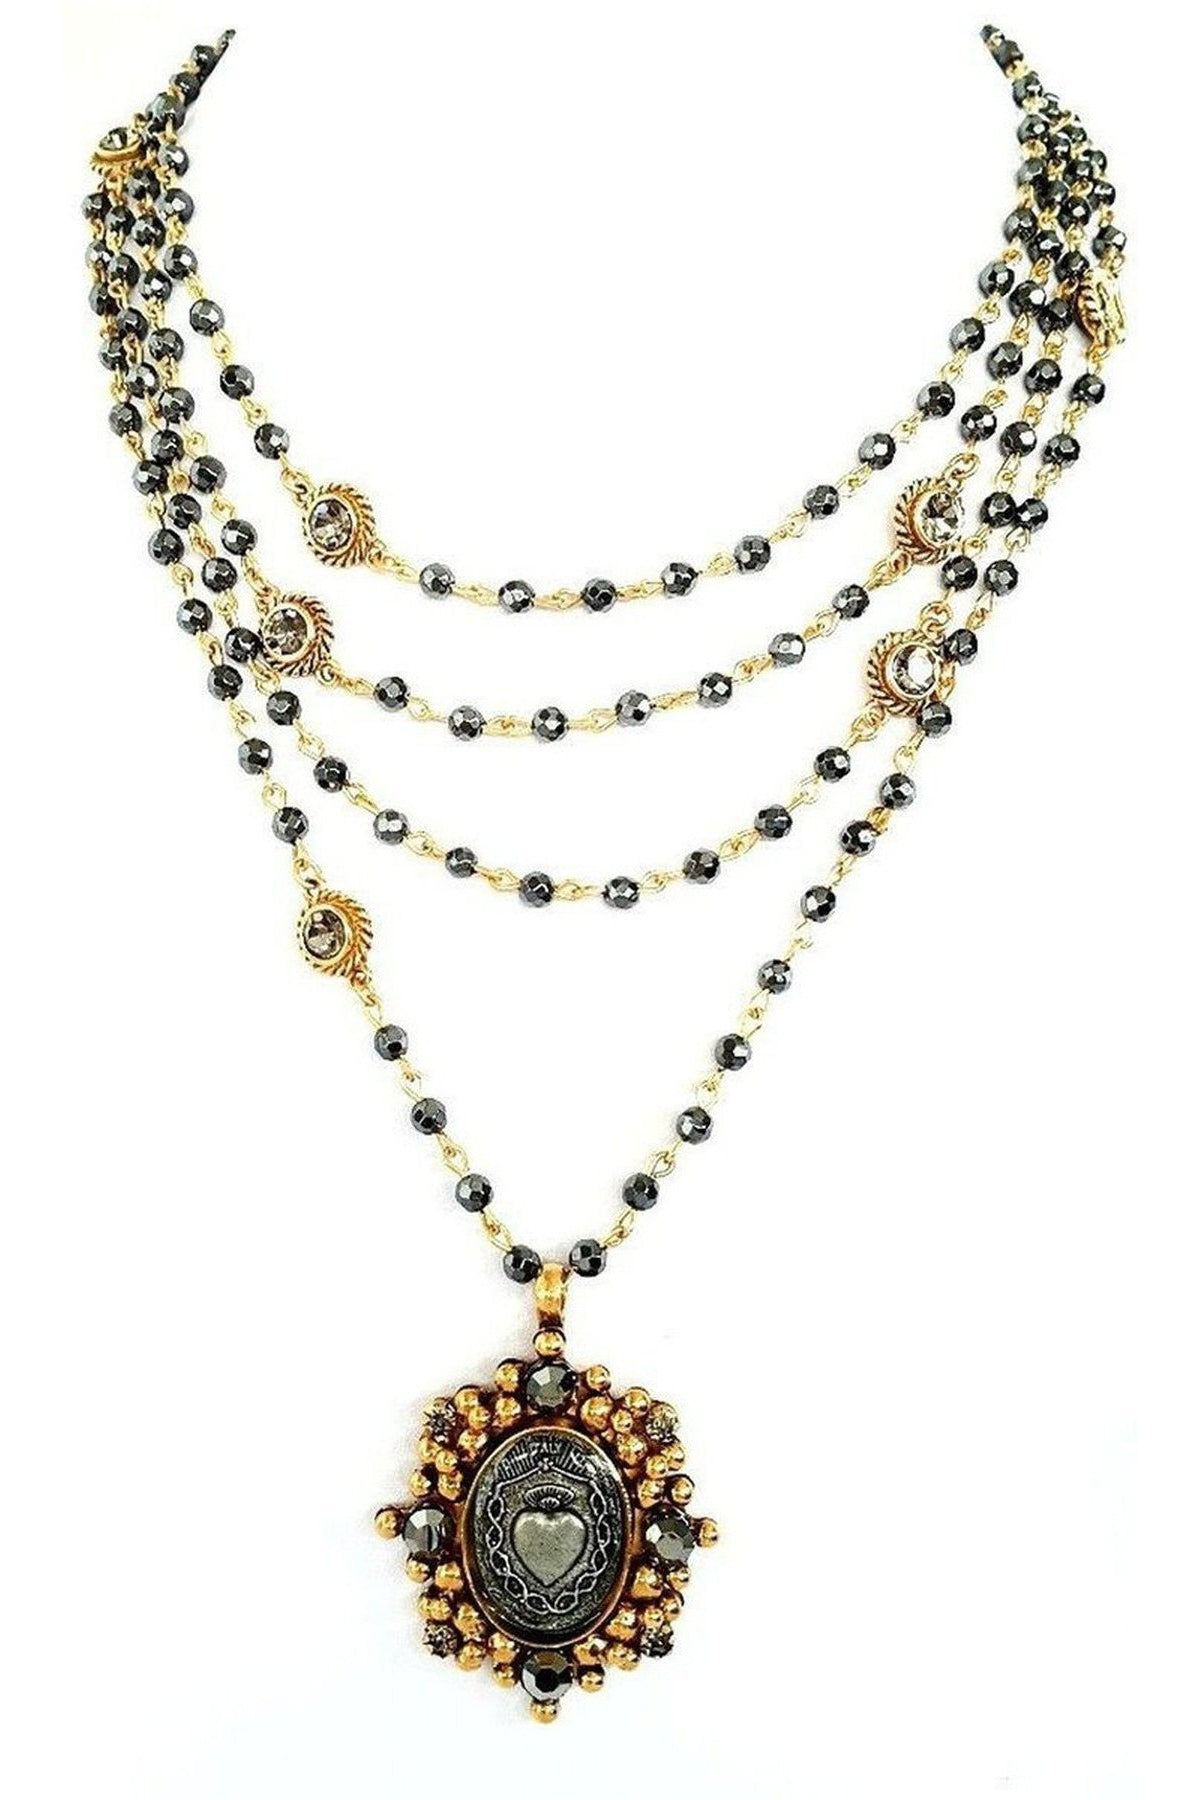 VSA Designs Necklace Exclusive Magdalena Sacred Heart XVMLOSH Gold ...